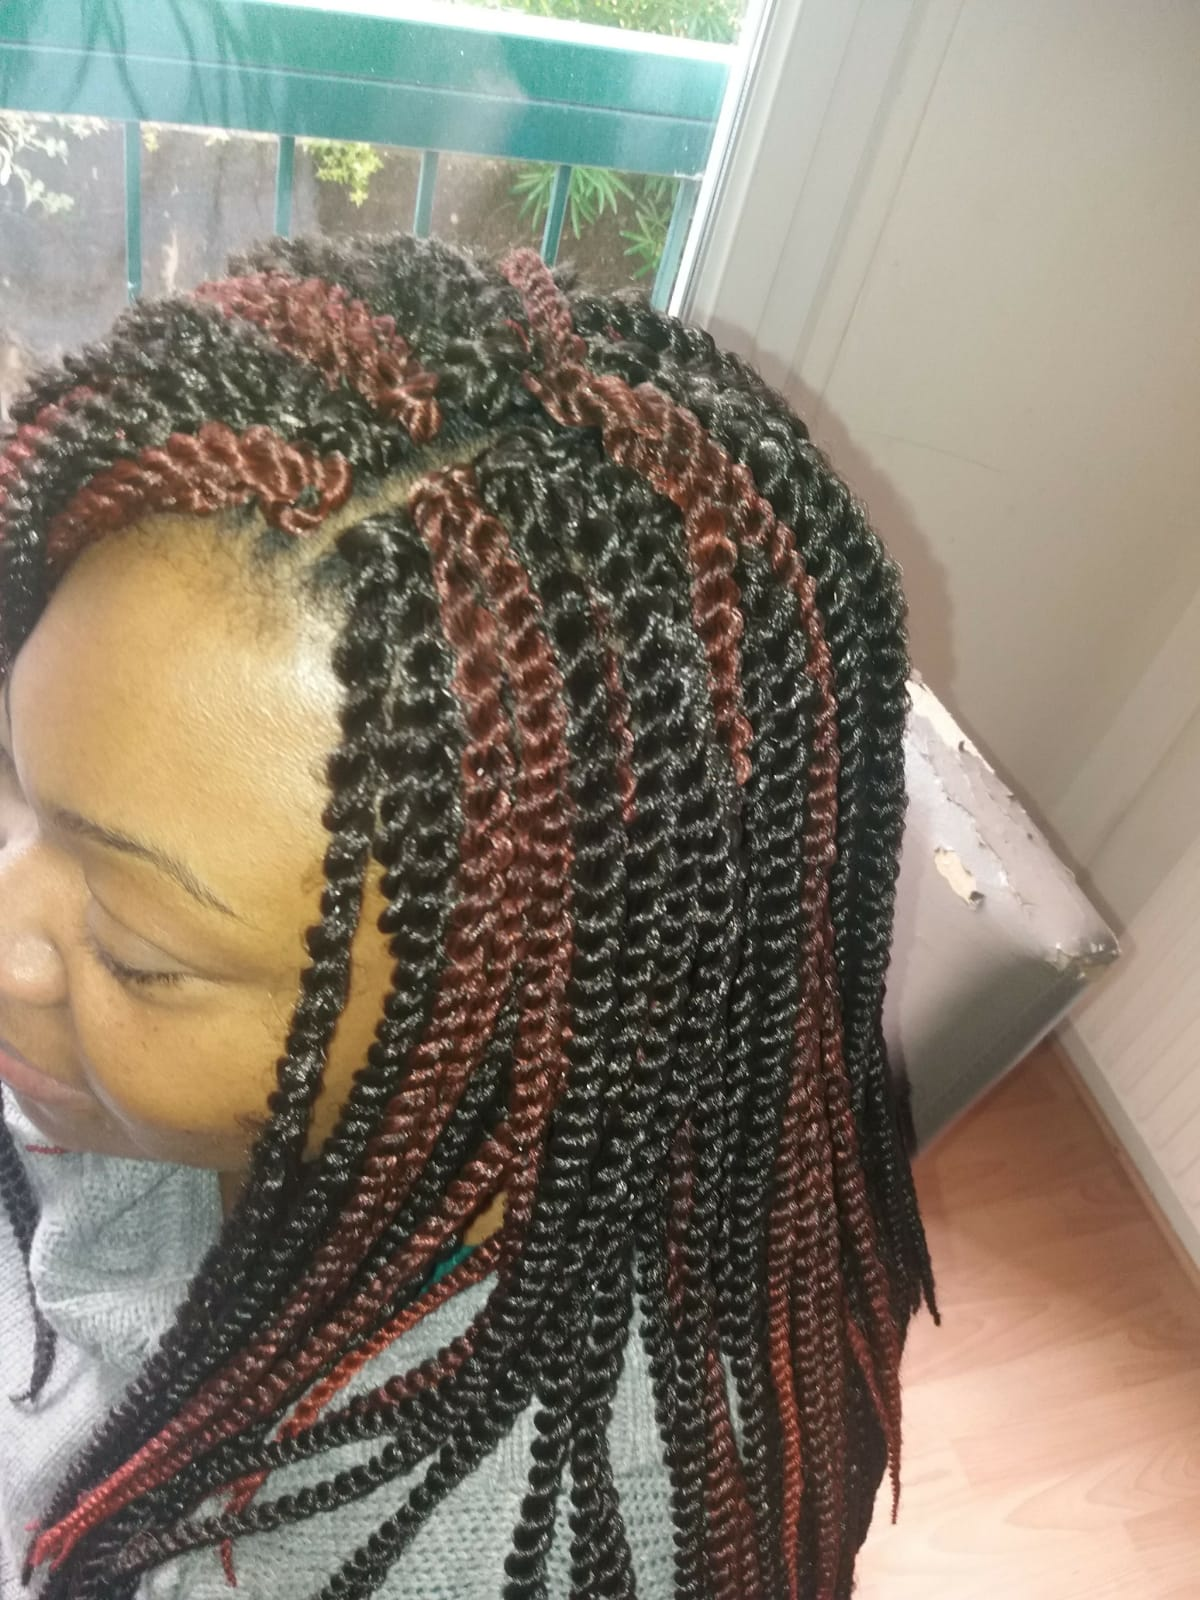 salon de coiffure afro tresse tresses box braids crochet braids vanilles tissages paris 75 77 78 91 92 93 94 95 GEOKOCGA